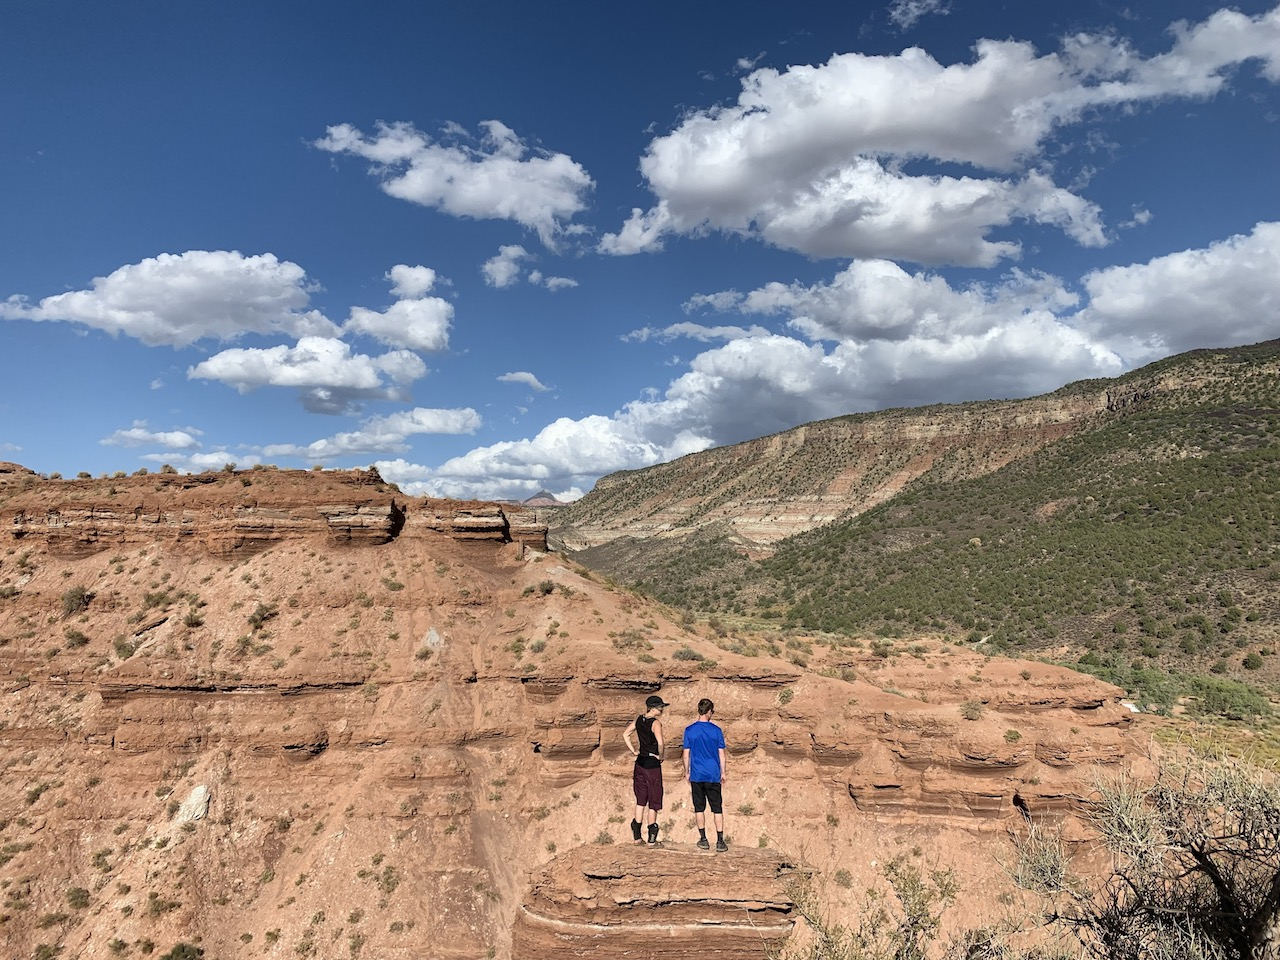 two small figures stand against a backdrop of blue skies, red cliffs and deep canyons